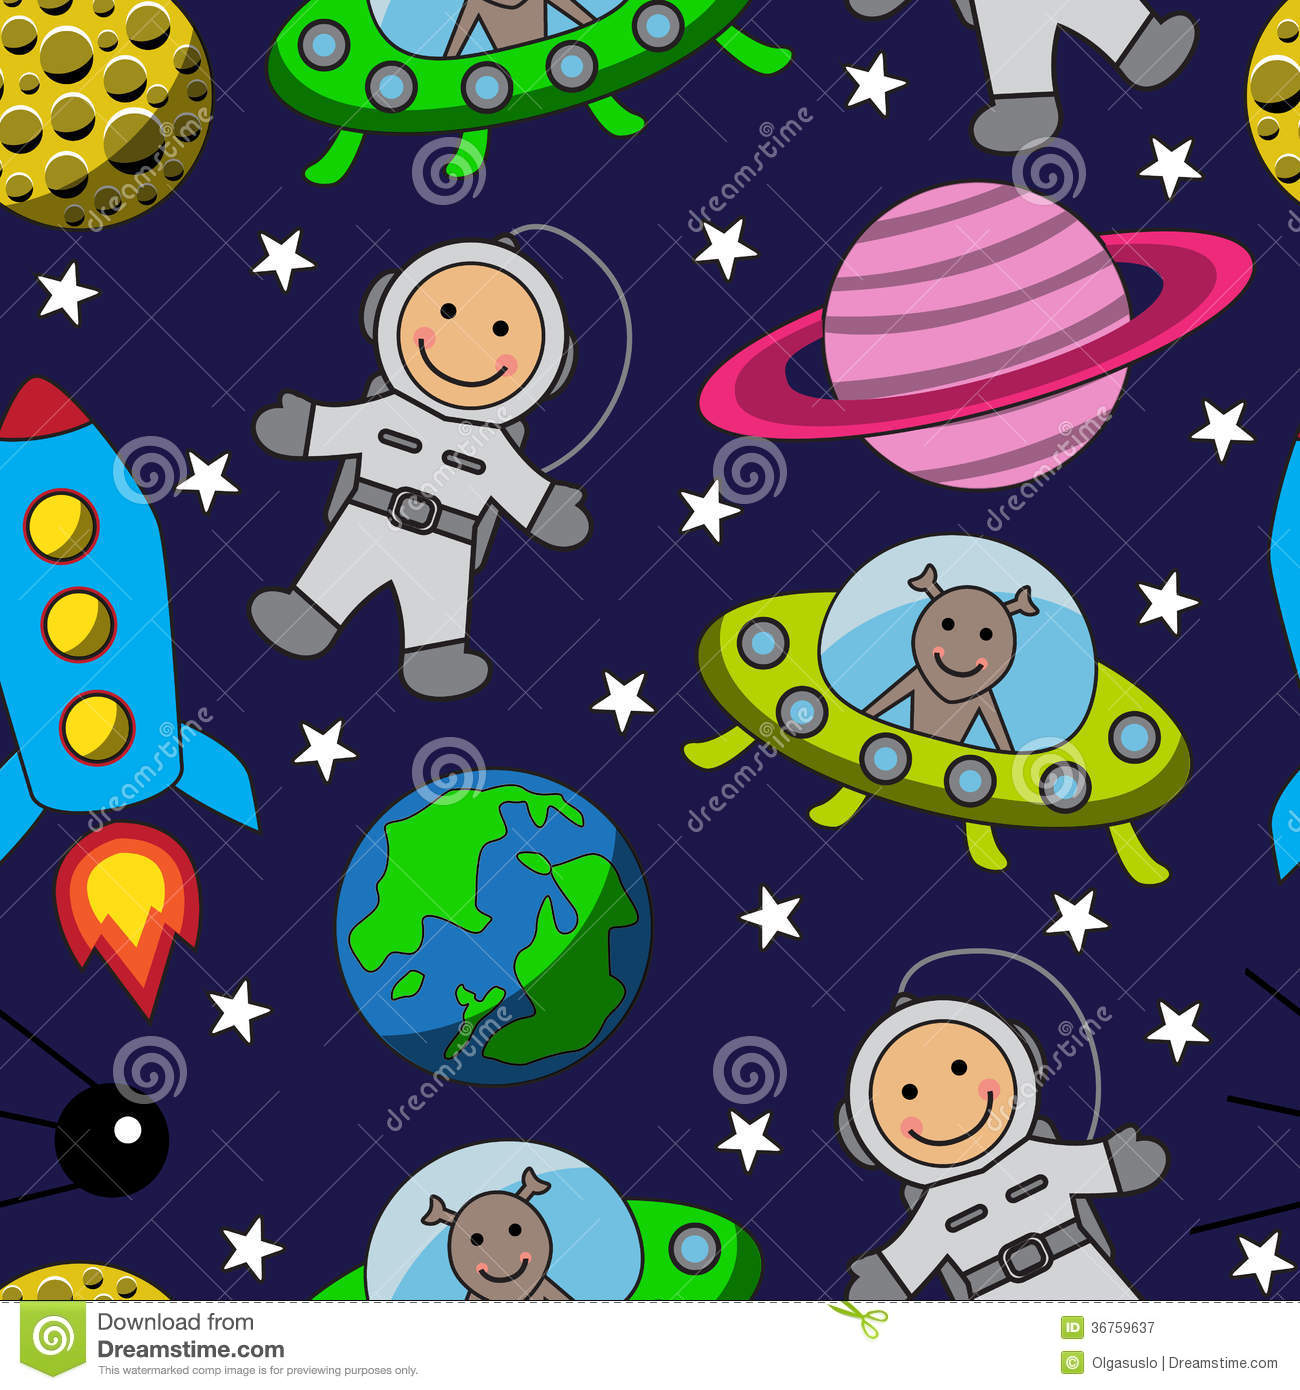 Cartoon seamless space with an astronaut. planets, stars and rocket.